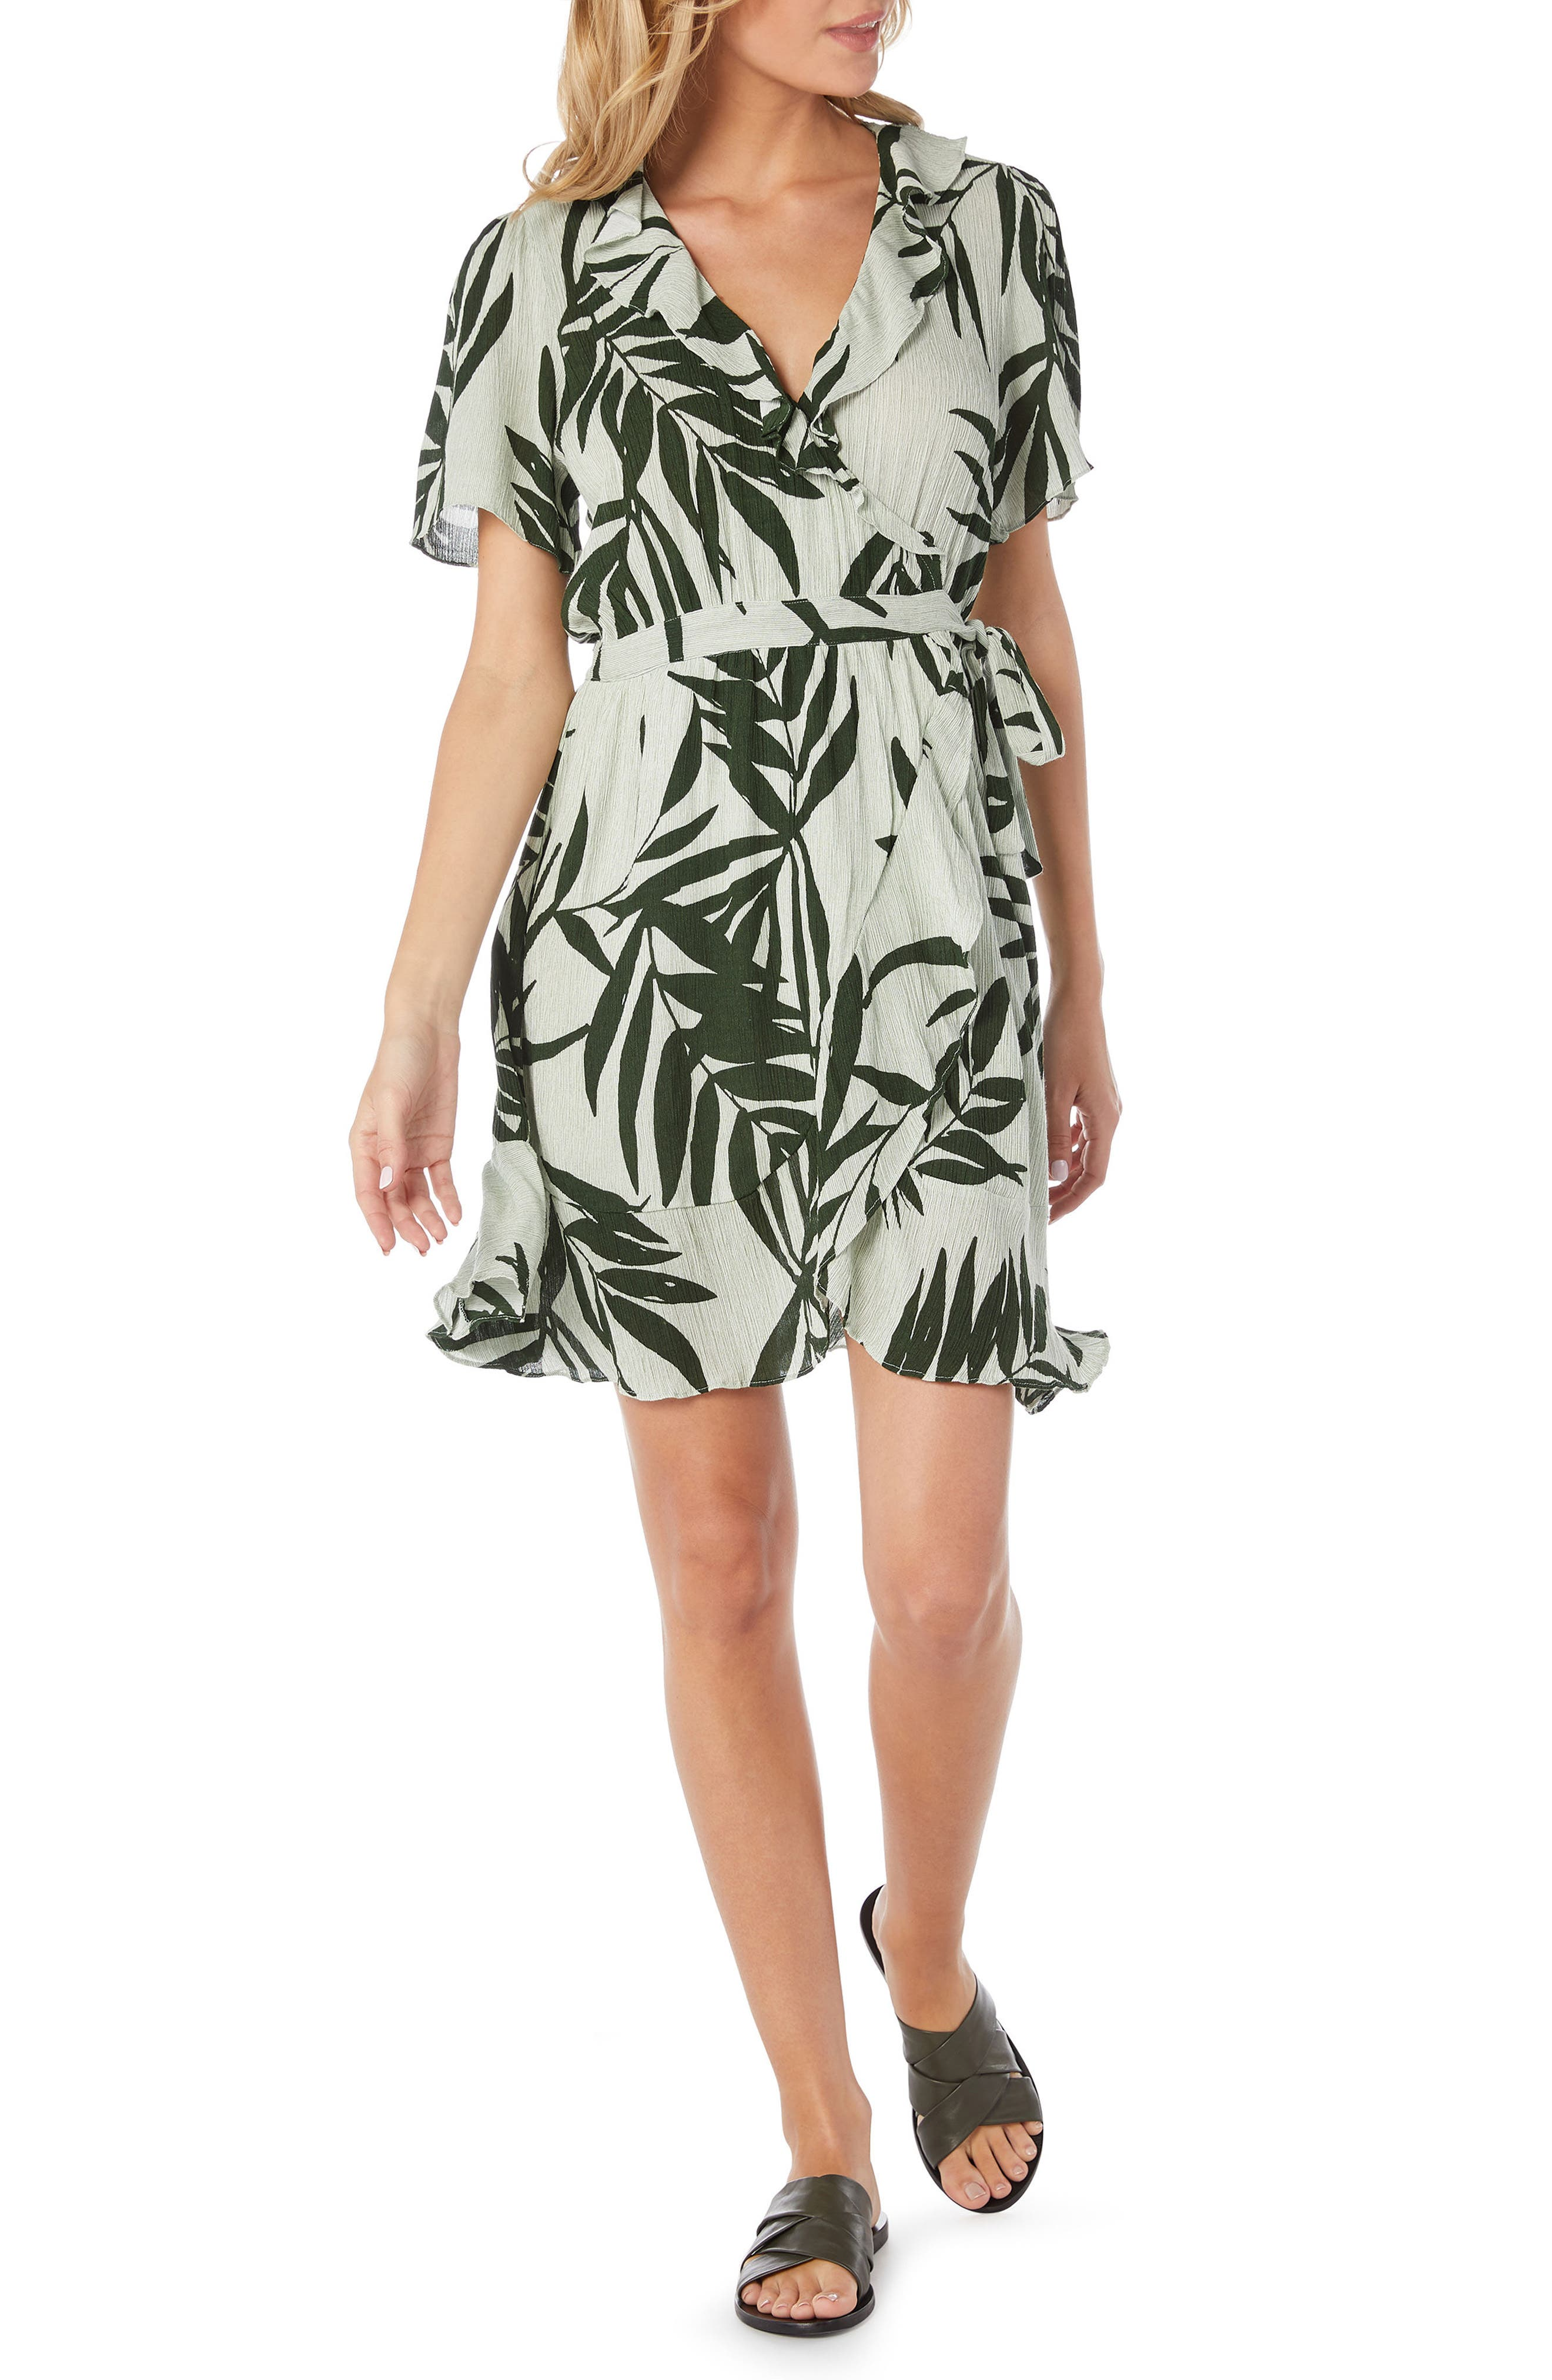 Paradiso Wrap Dress,                             Main thumbnail 1, color,                             340